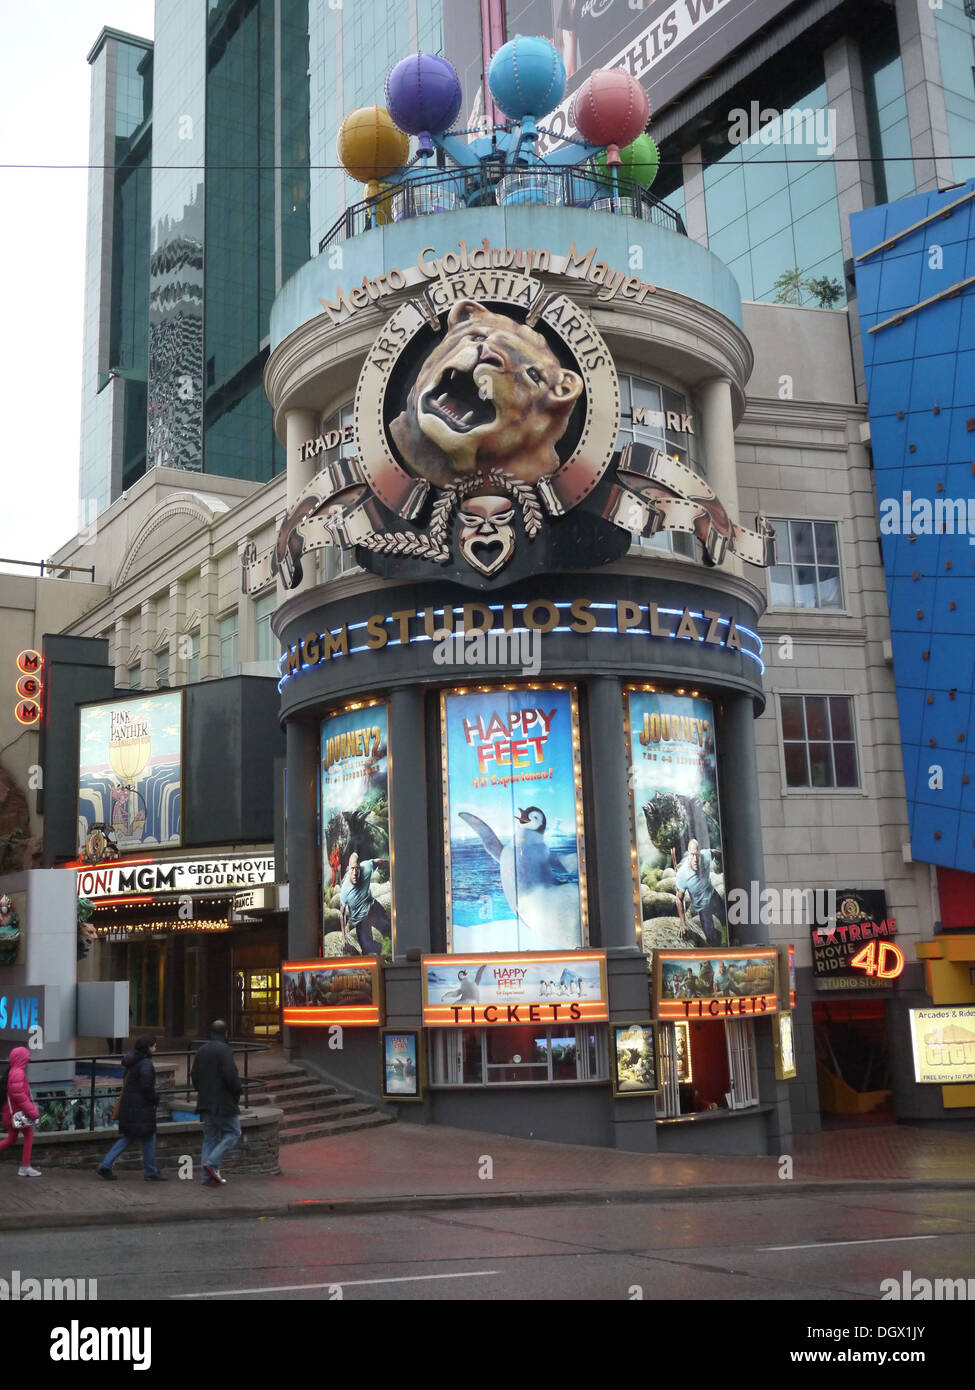 The MGM Studio Plaza Niagara Falls features one of a kind 4D theatres and rides. - Stock Image